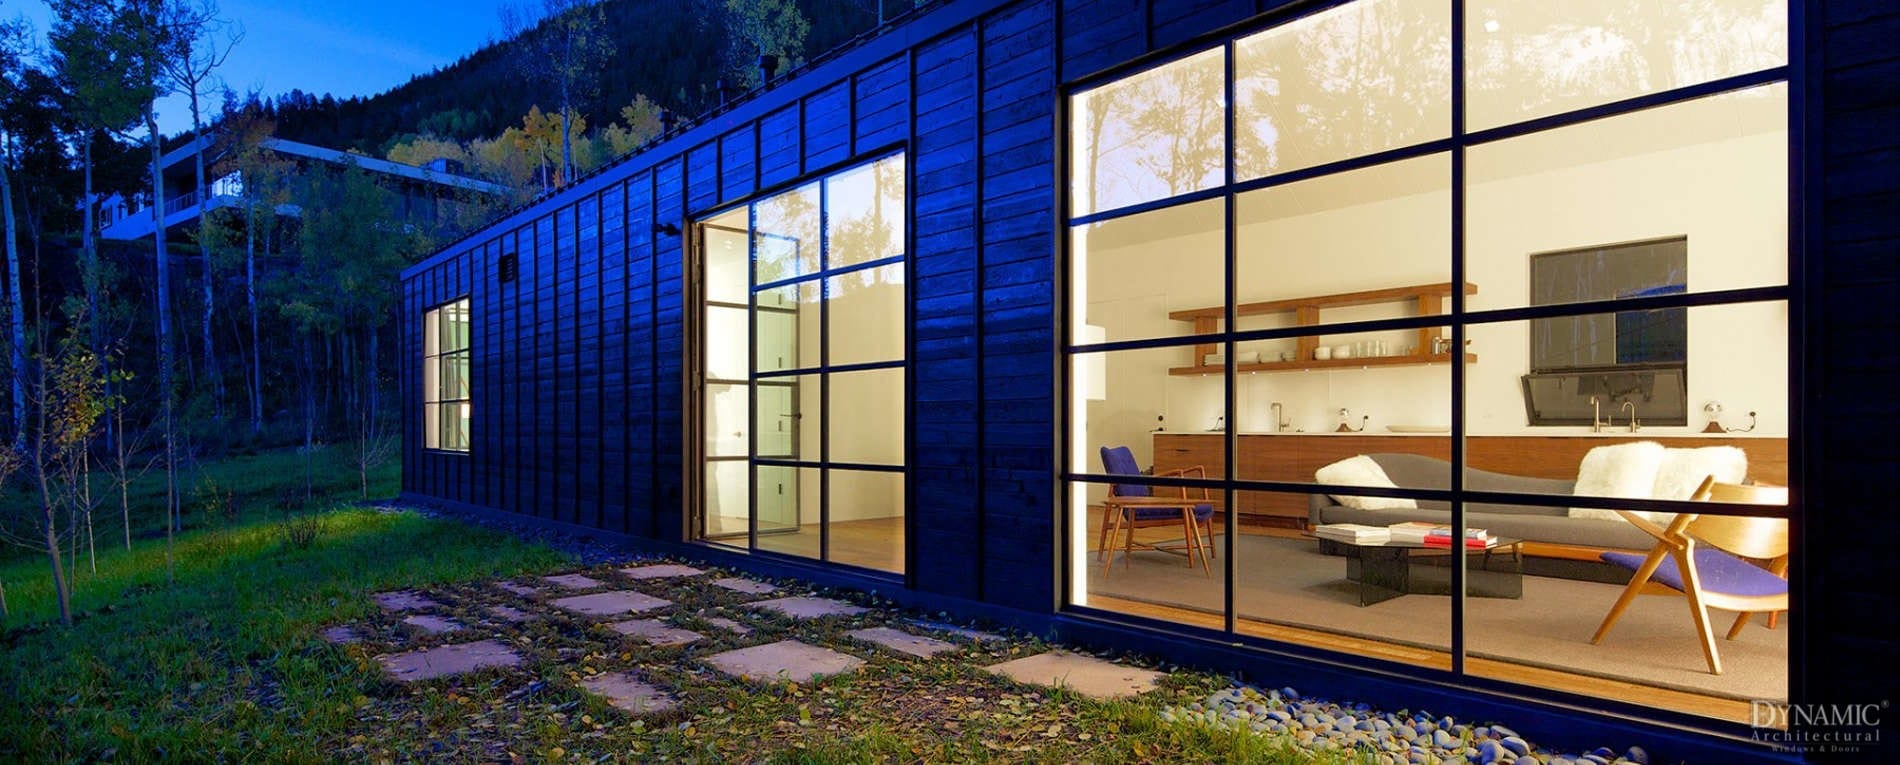 Modern windows design inspirations dynamic architectural for Architecture windows